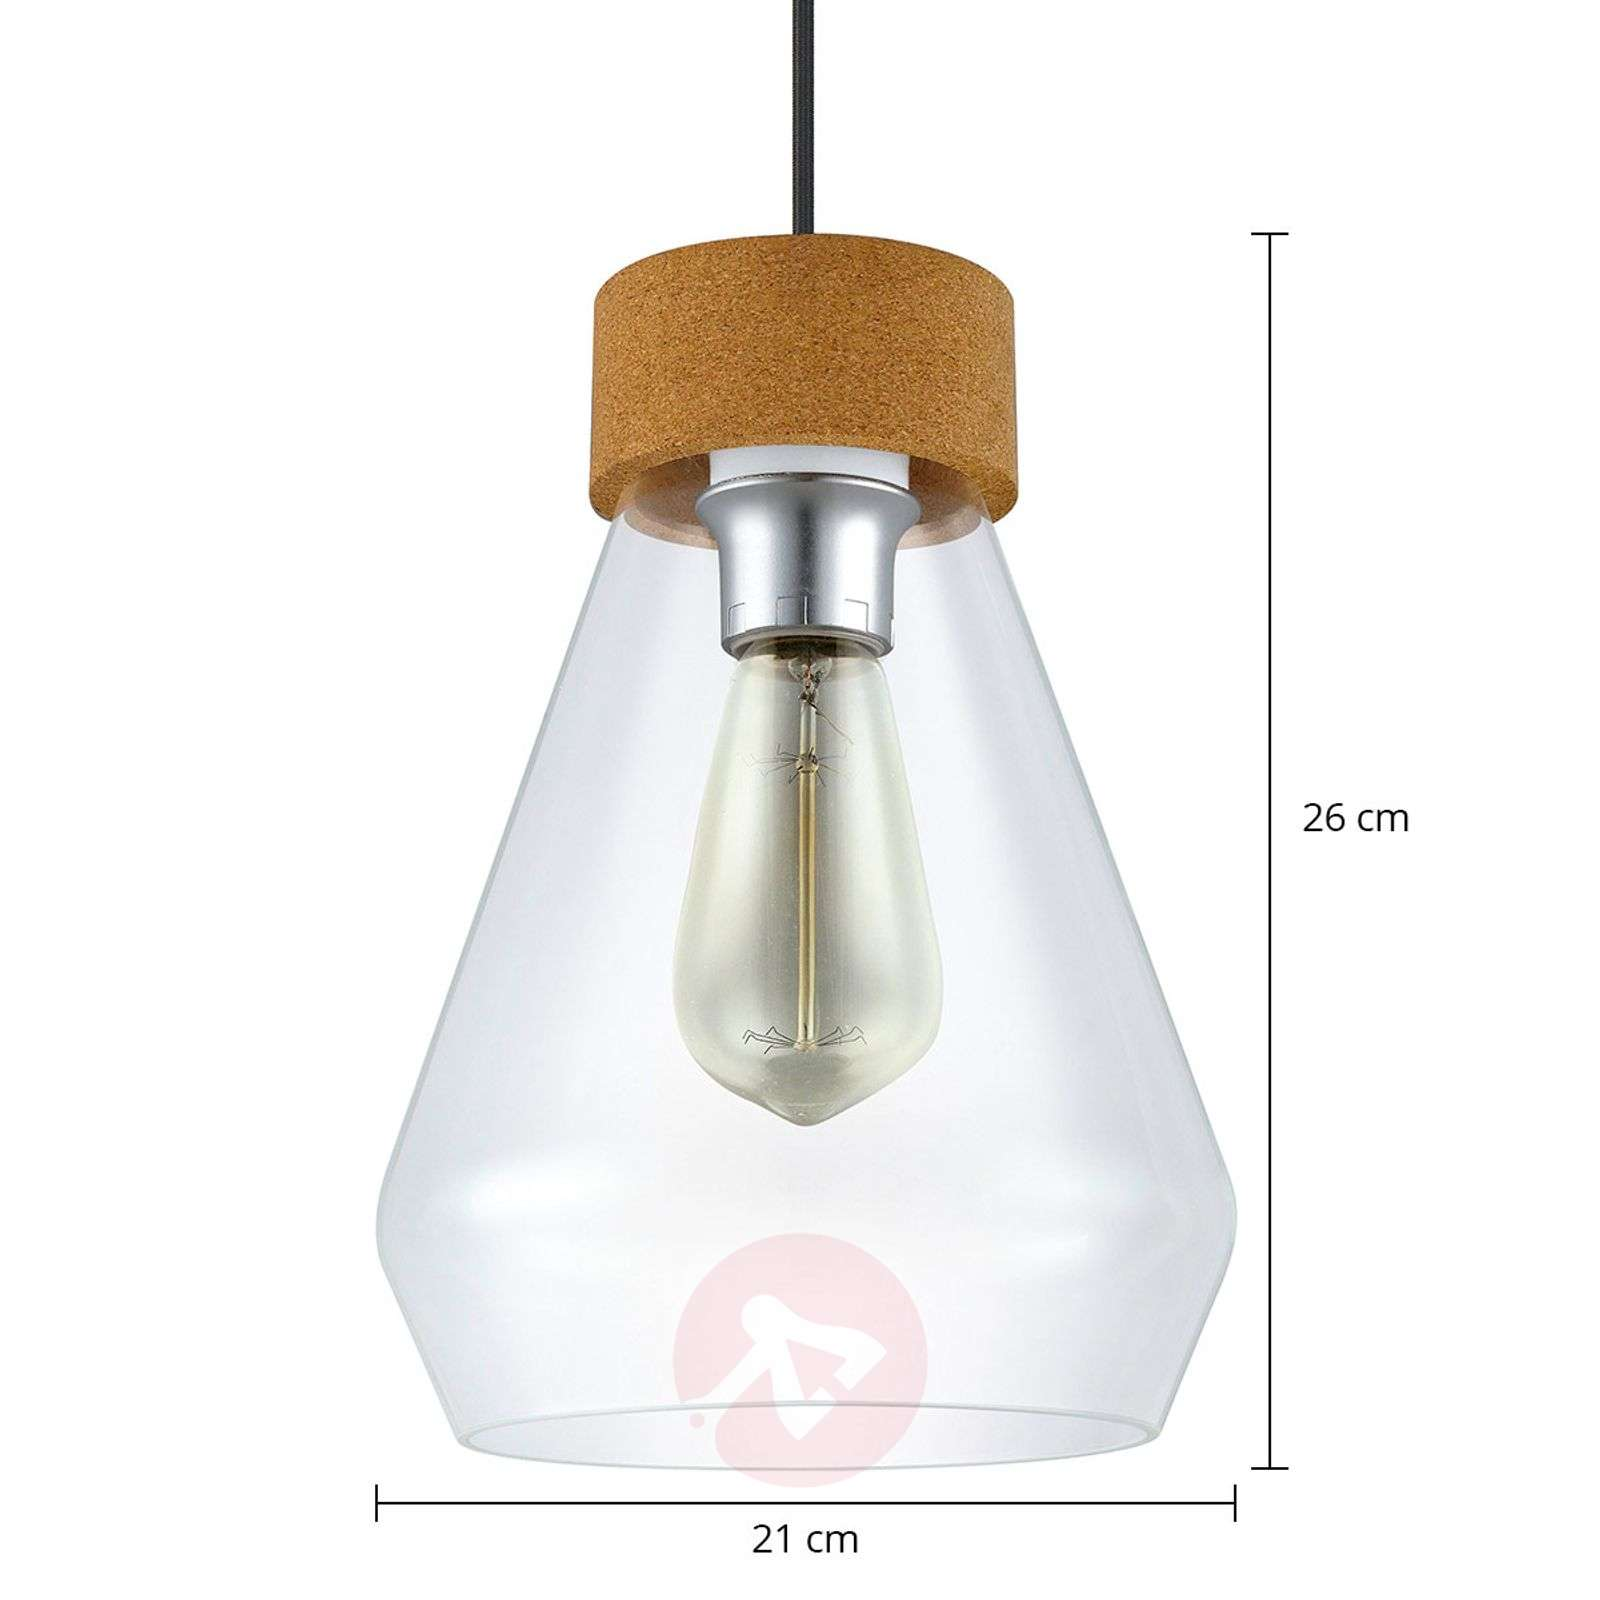 Glass pendant light Brixham-3031871-01